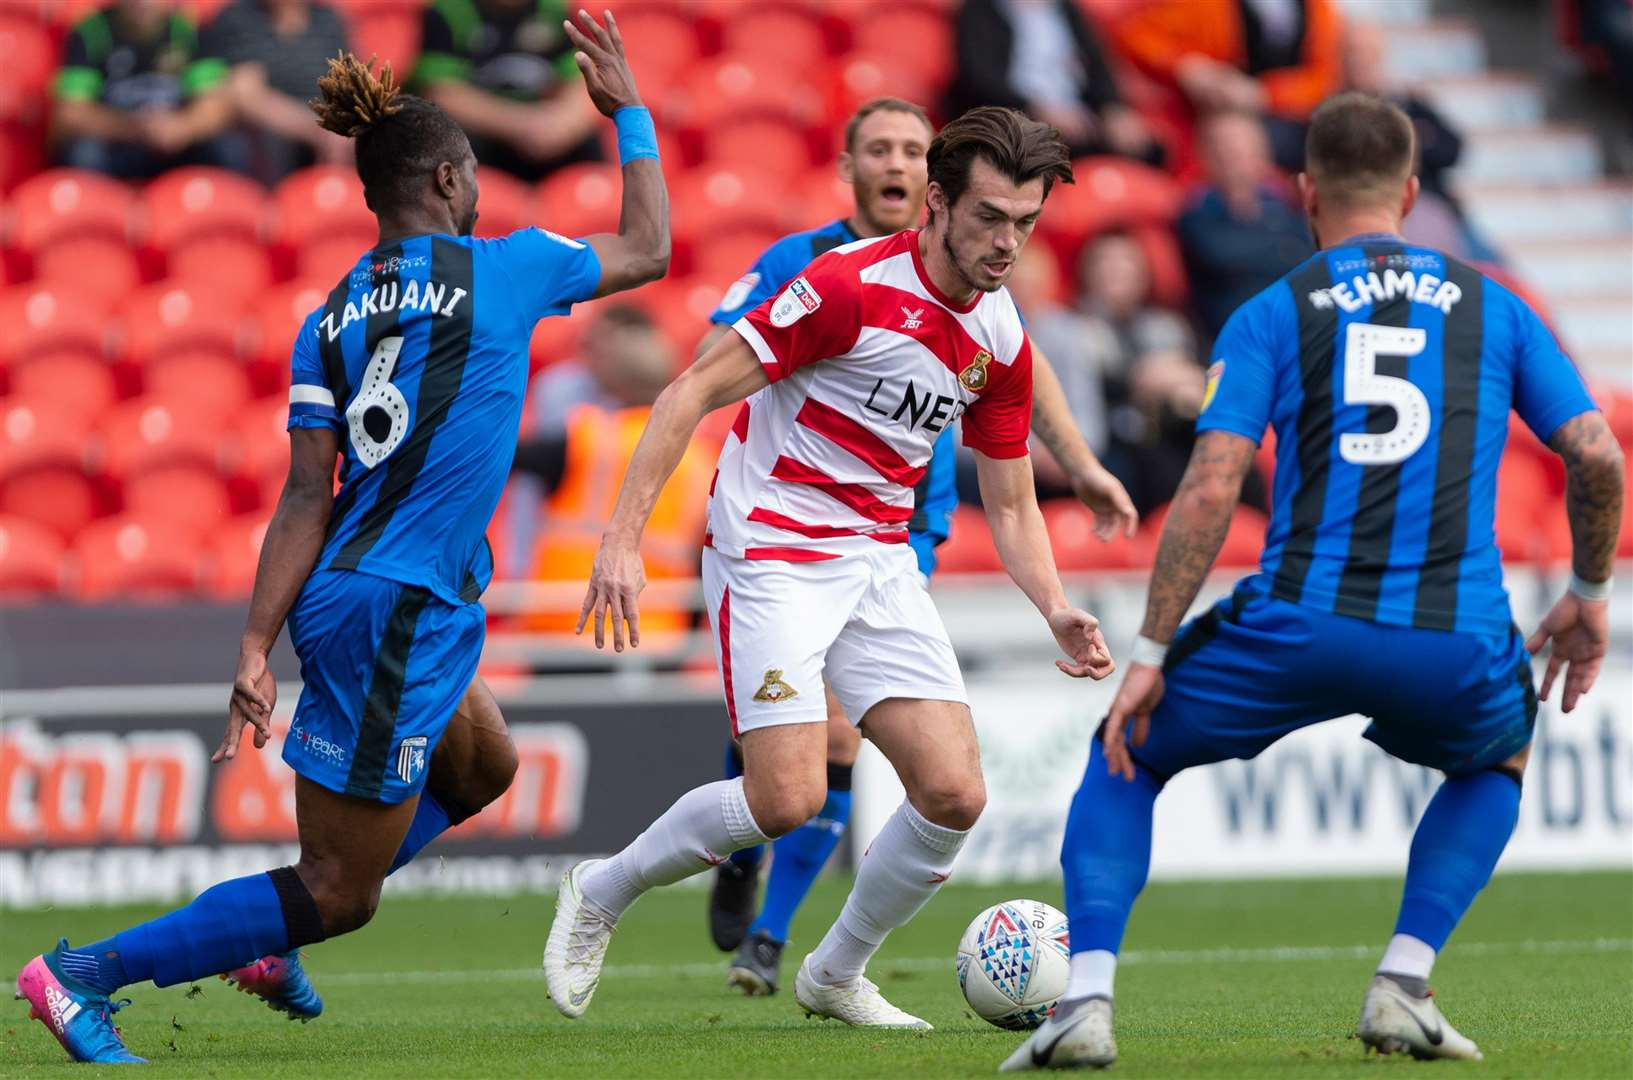 Former Gills forward John Marquis takes on the visiting defence. Picture: Ady Kerry